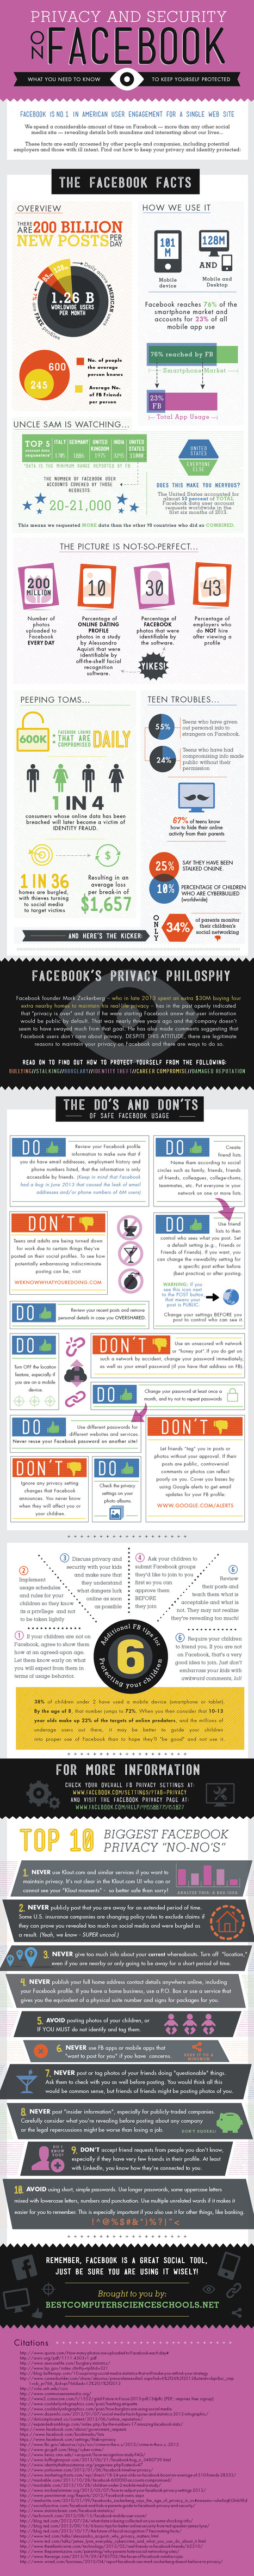 Infographic:  Everything you need to know about privacy on Facebook | Social Networker | Scoop.it